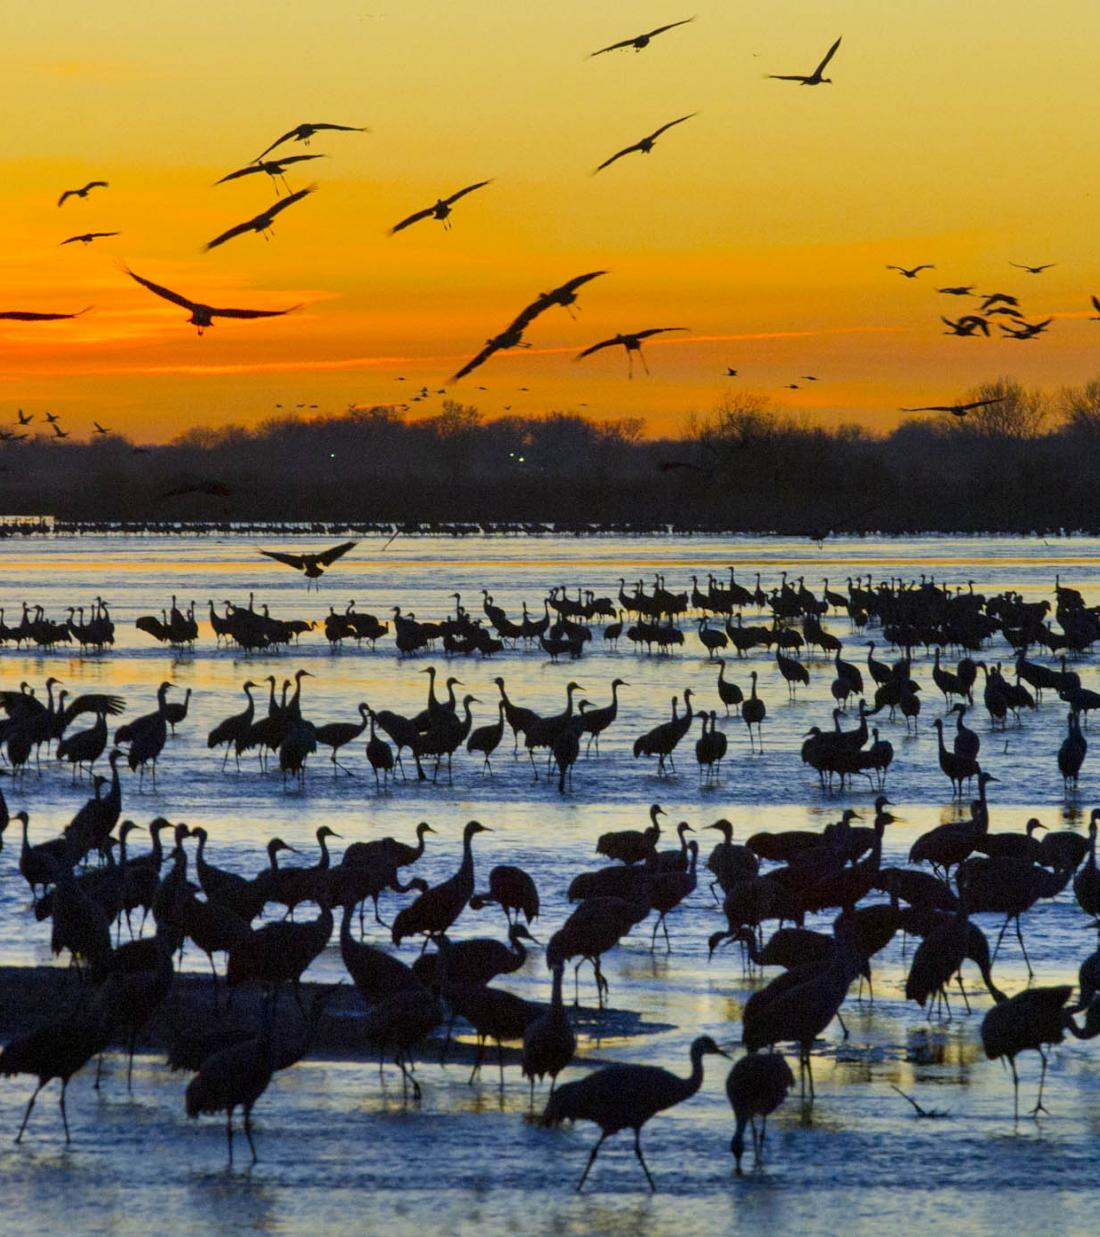 Sandhill cranes event photo